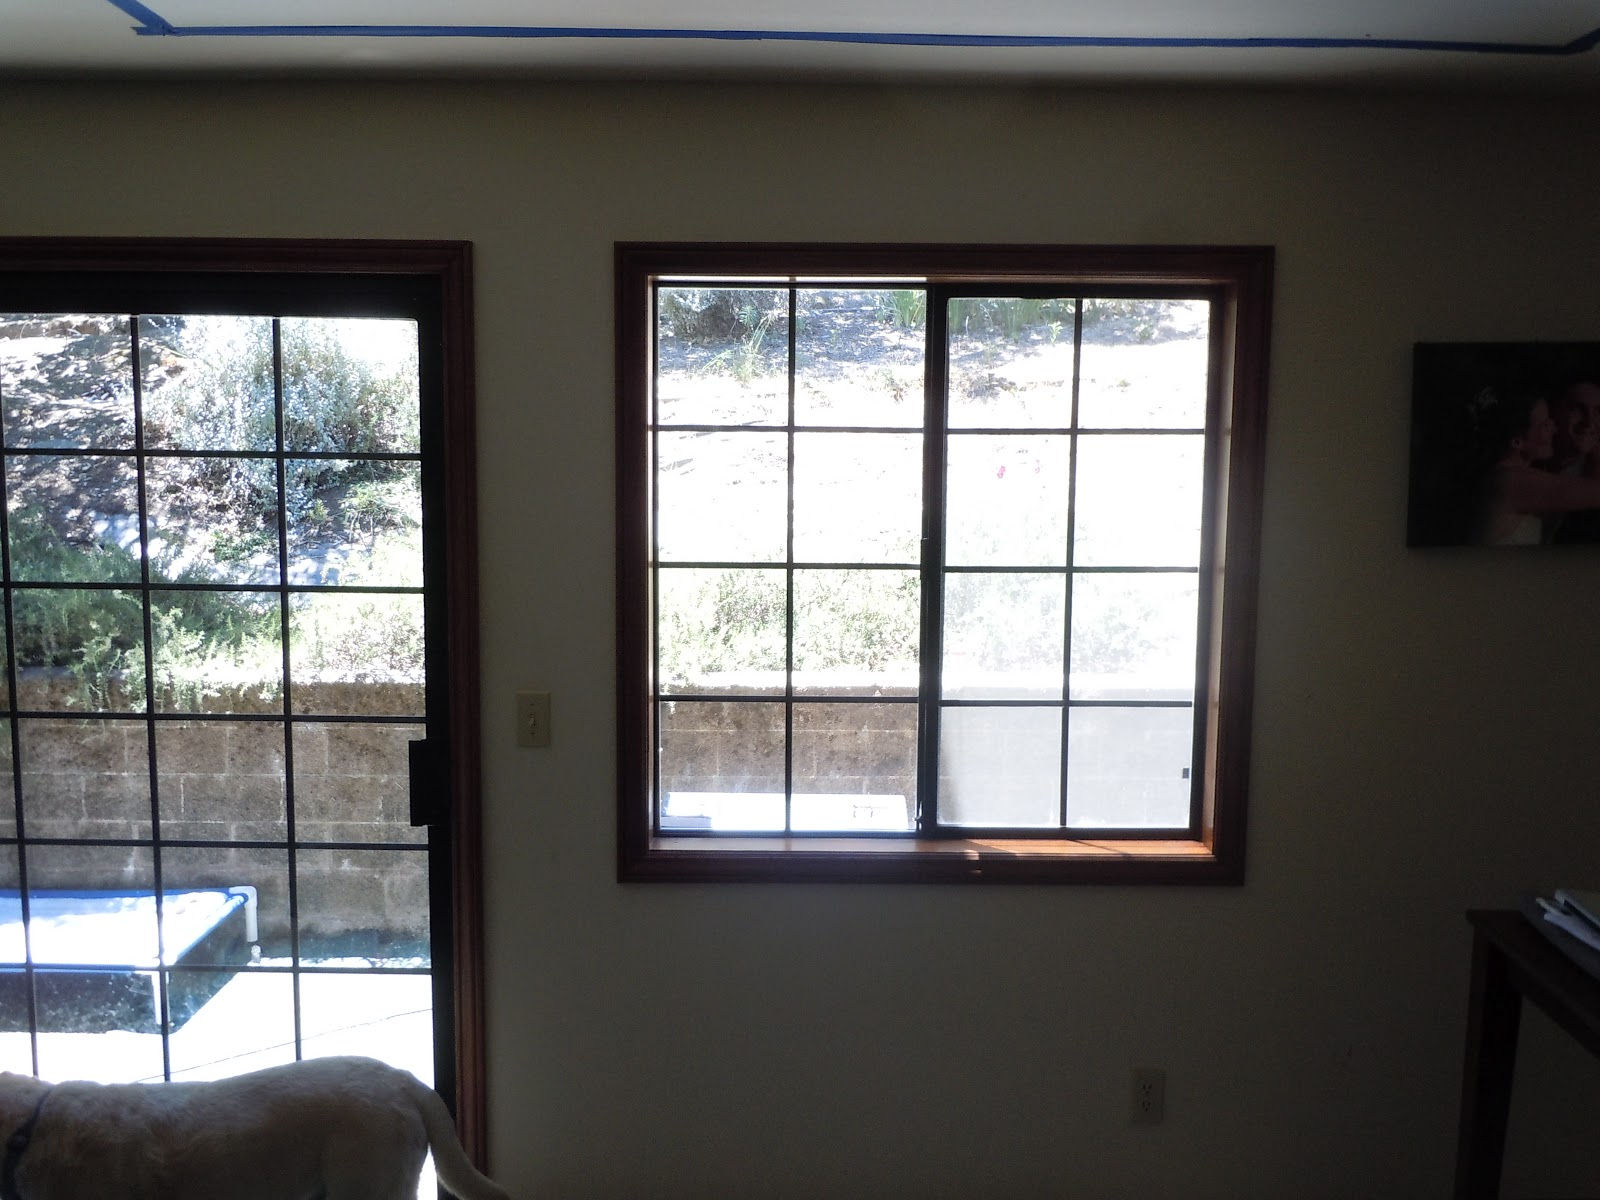 Marvin window and door installation with vycor pro for Marvin transom windows